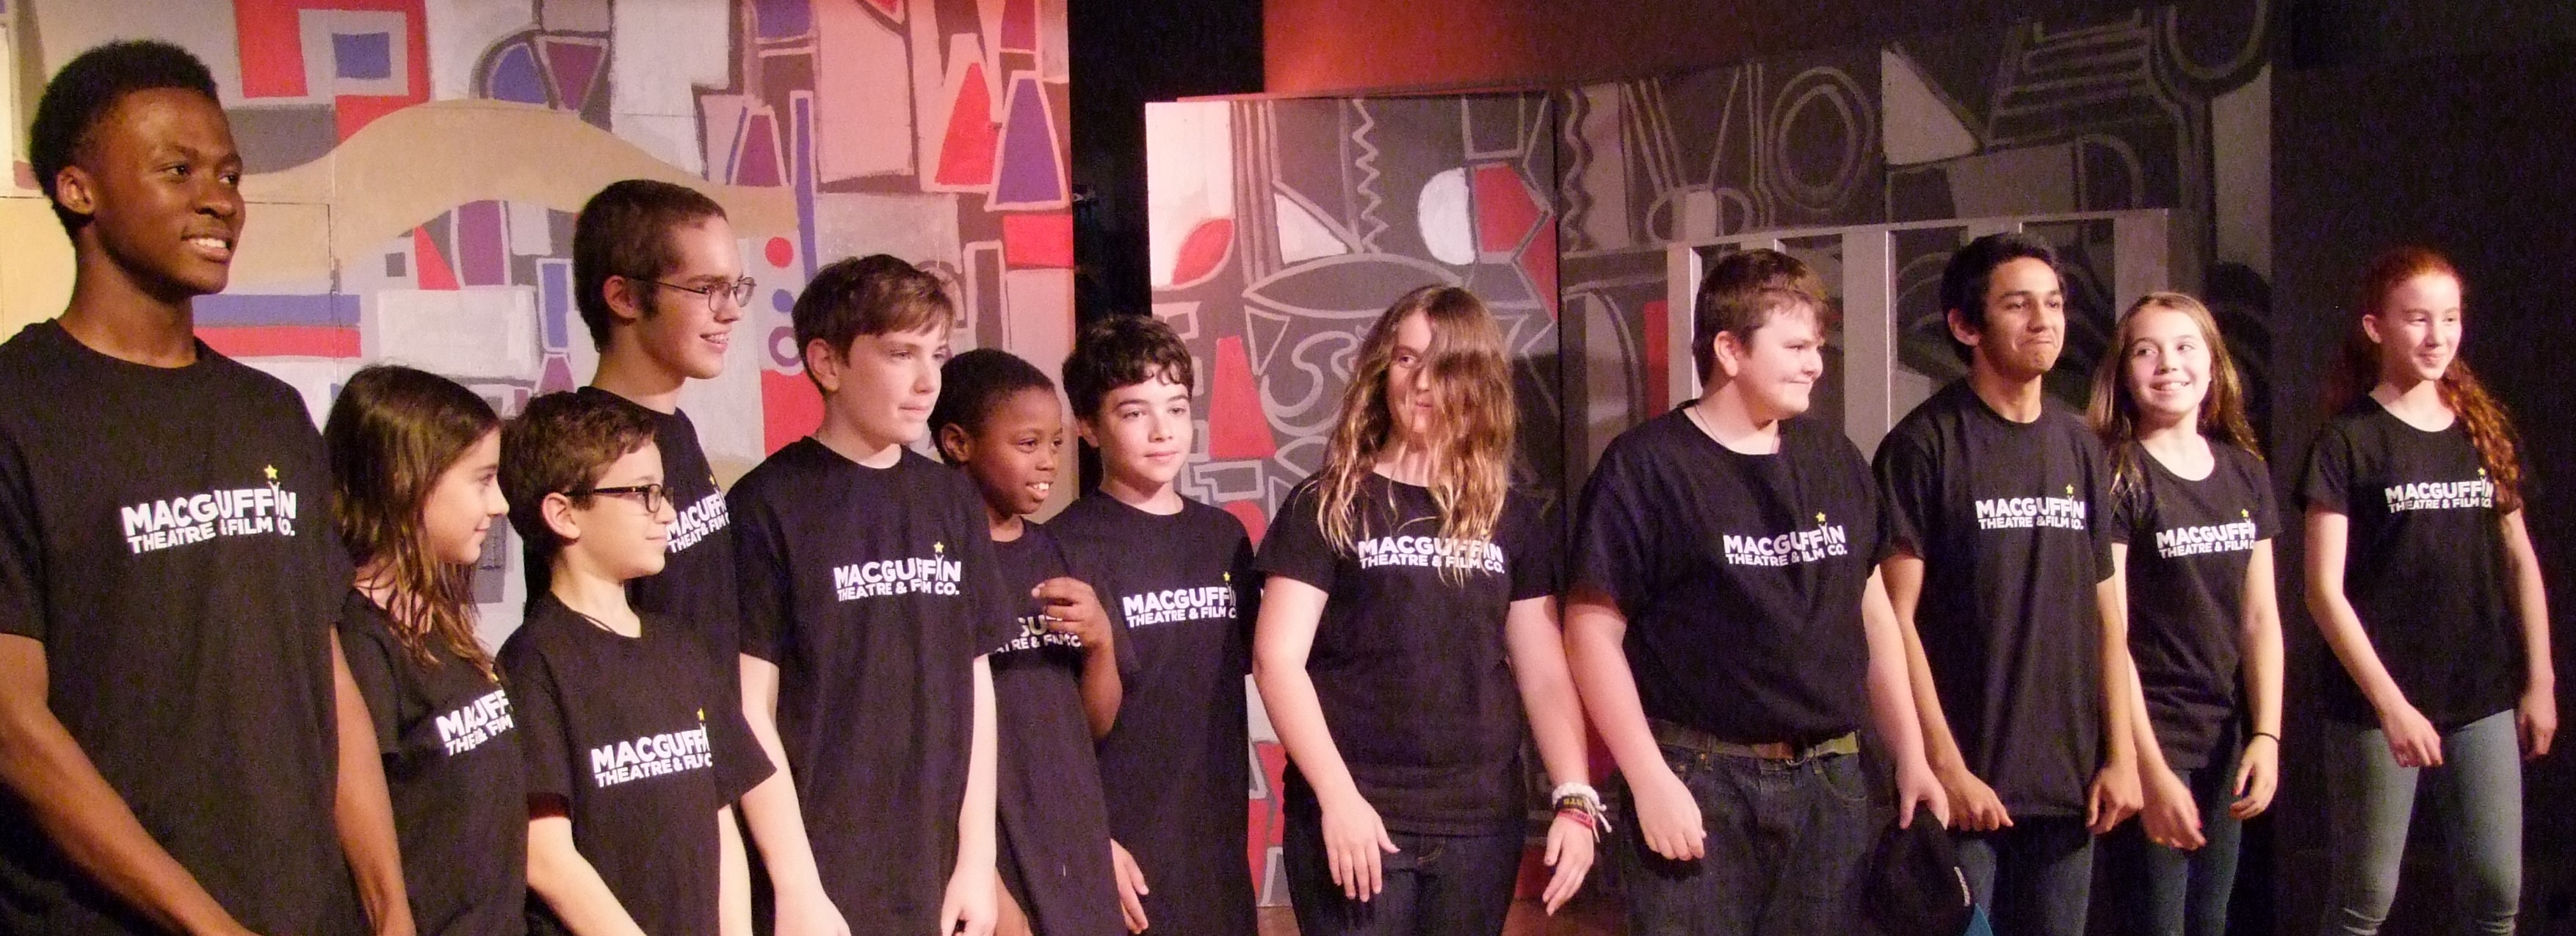 Summer Program - Comedy | MacGuffin Theatre and Film Company: Comedy Camp